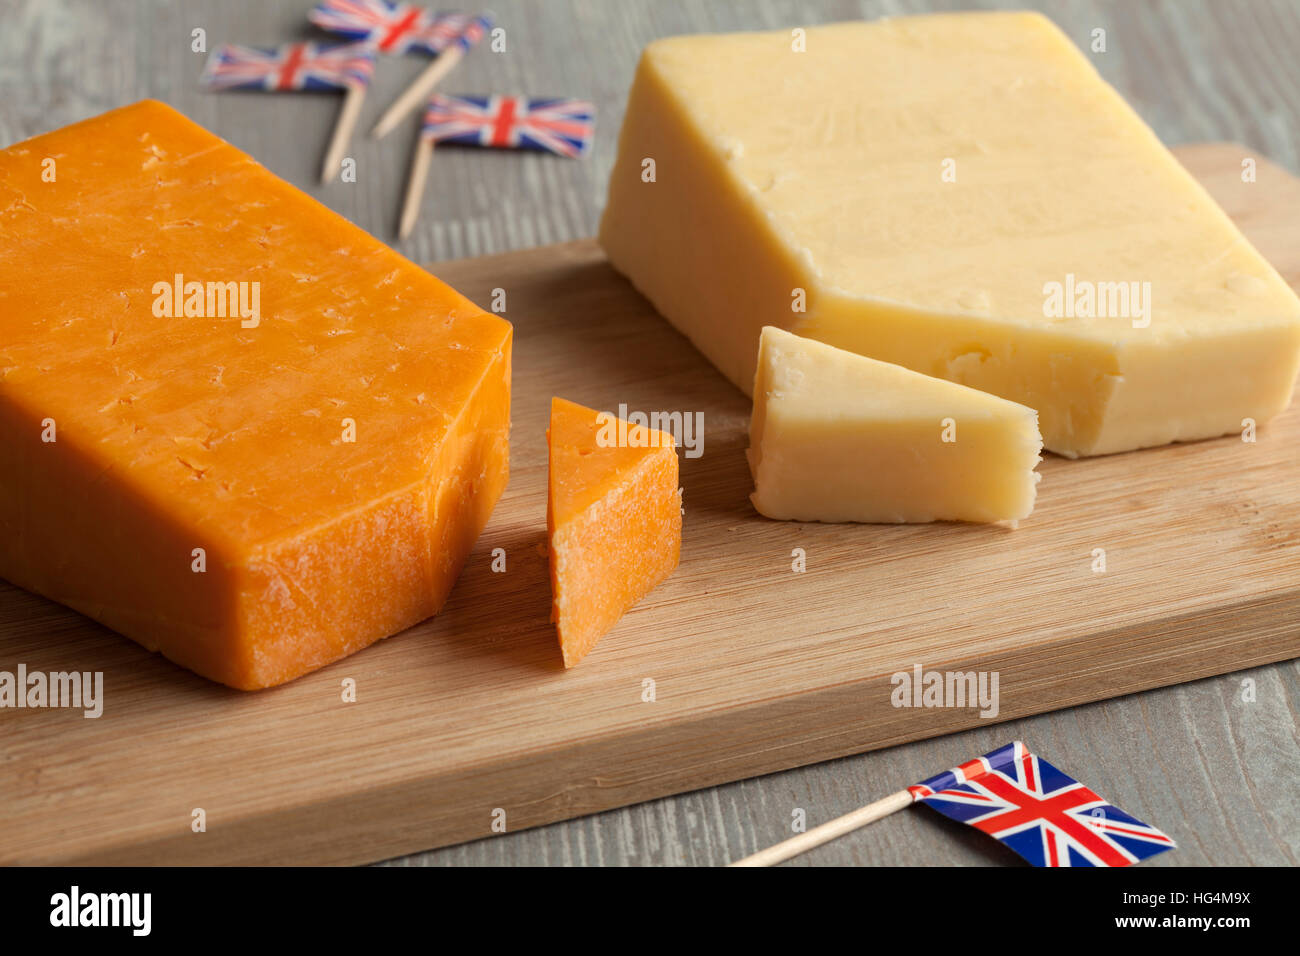 Pieces of traditional english cheese and flags - Stock Image